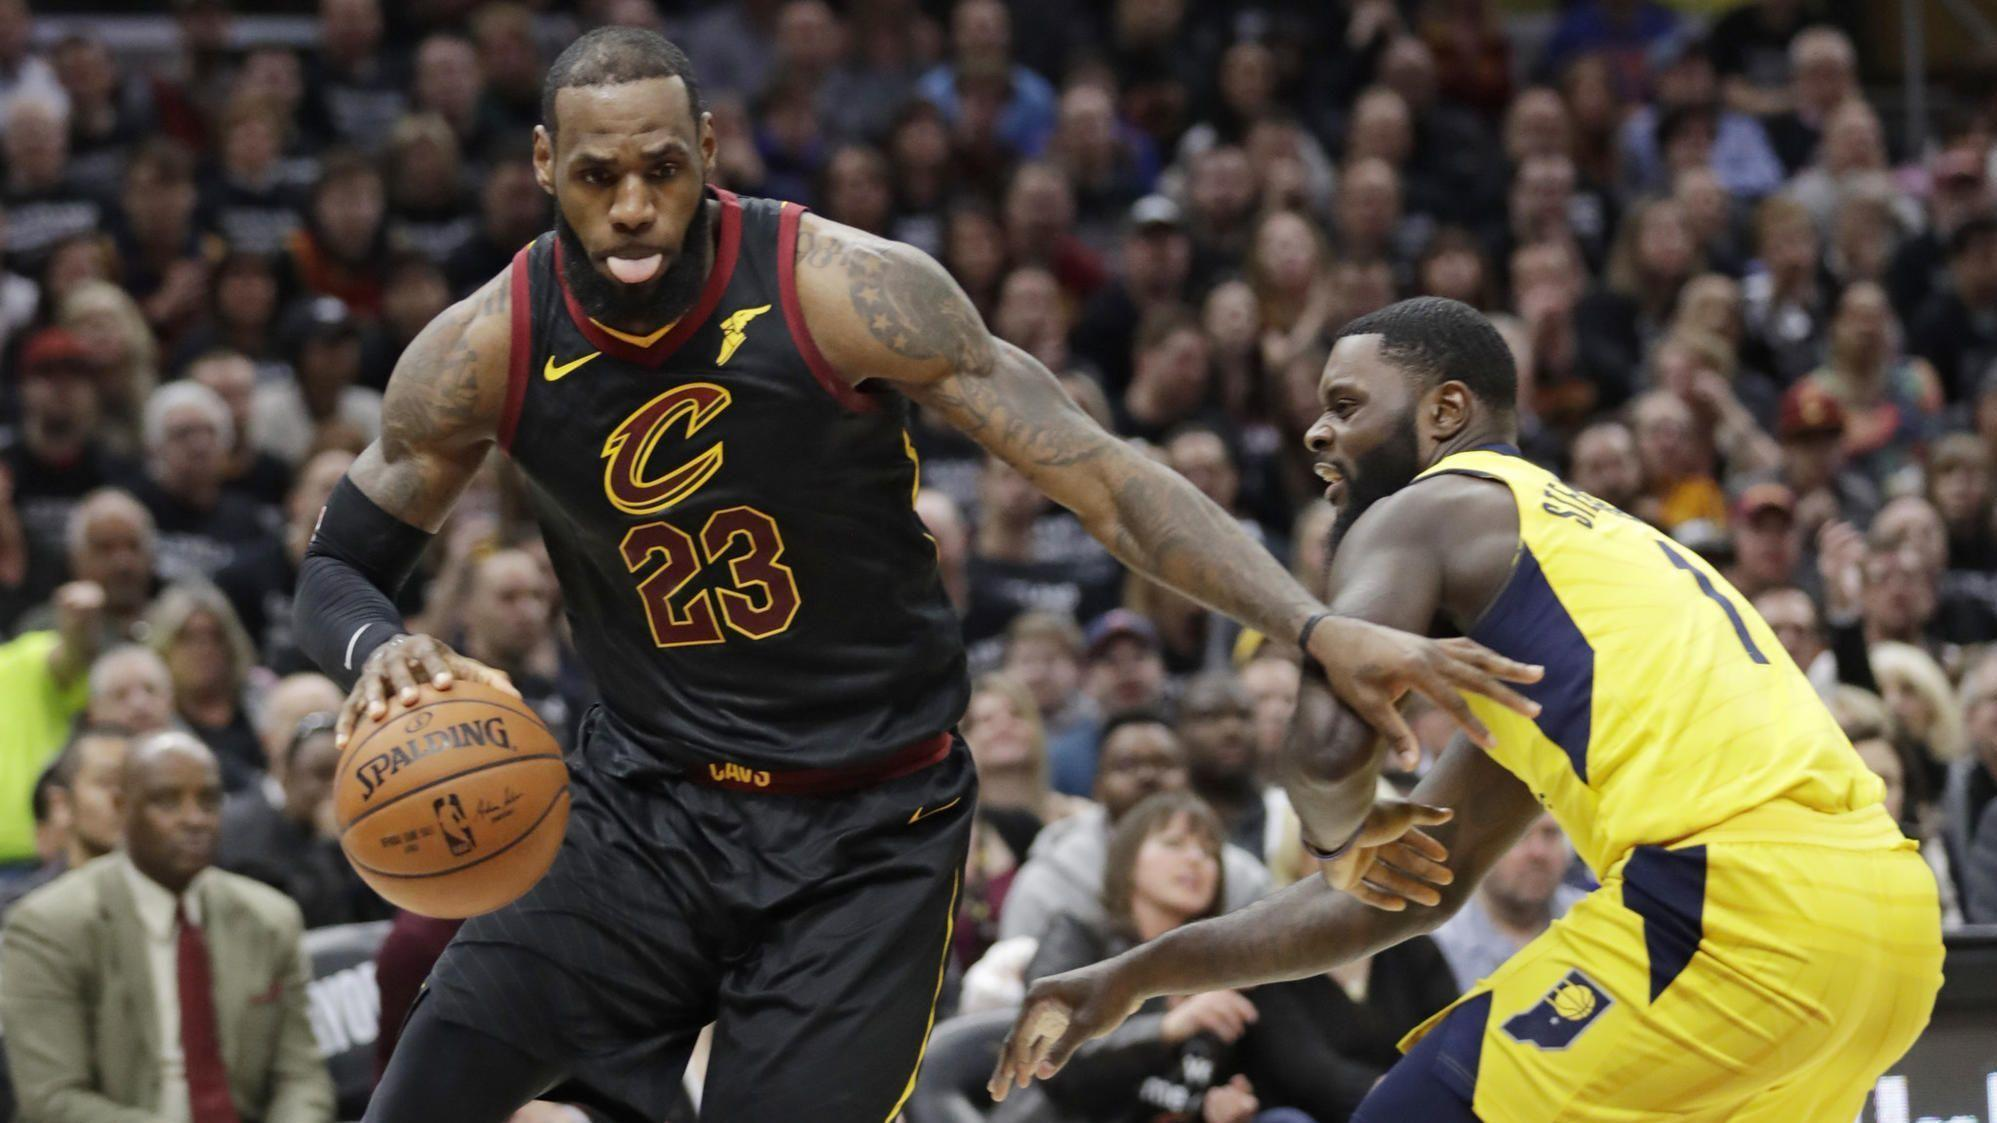 072d0fd456d3 LeBron James carries Cavaliers past Pacers in Game 7 - Chicago Tribune